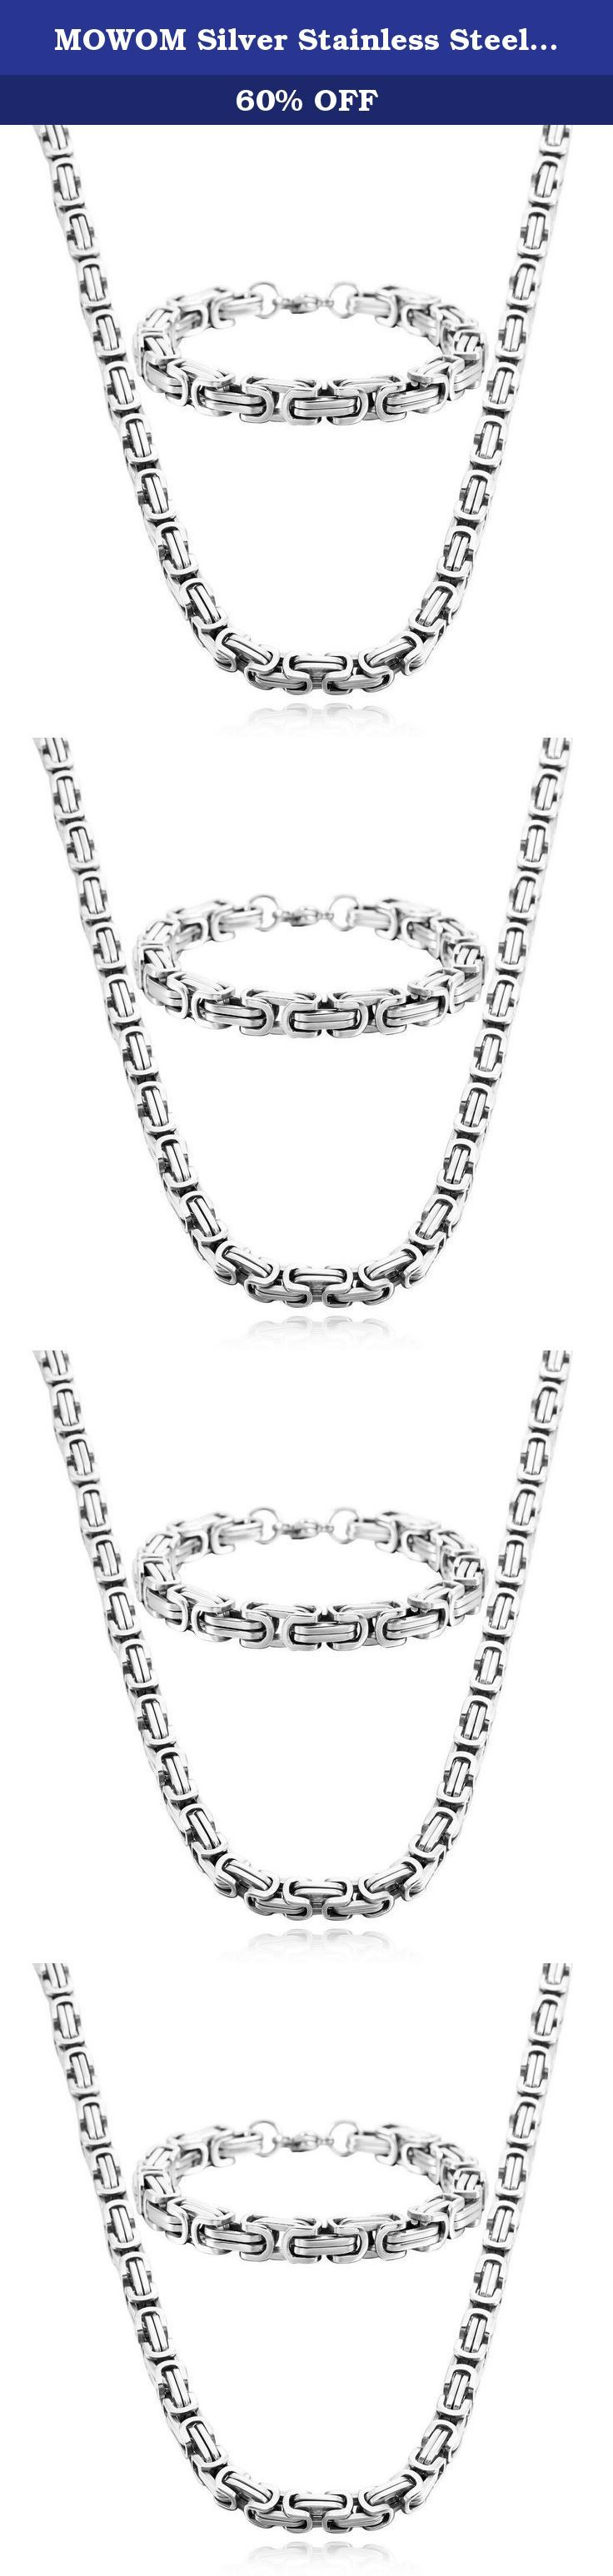 MOWOM Silver Stainless Steel Bracelet Necklace Link Byzantine Chain Set. Silver Stainless Steel Bracelet Necklace Link Byzantine Chain Set.